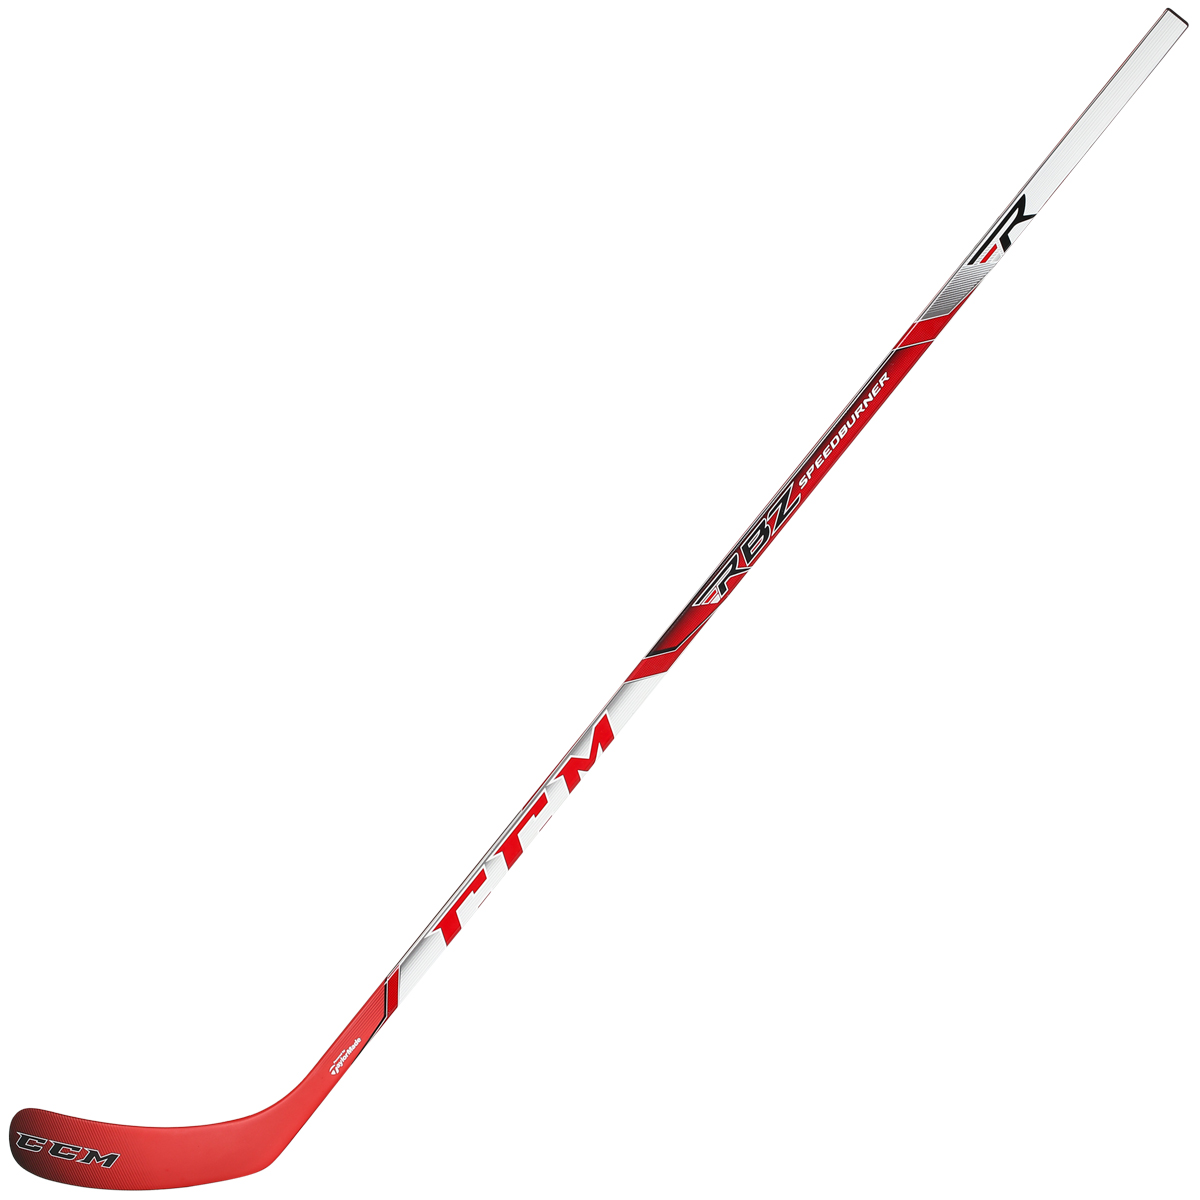 hockey sticks Find the hockey stick you need to dominate the game at dick's sporting goods equip yourself with the best hockey sticks on the market and skate your way to victory.